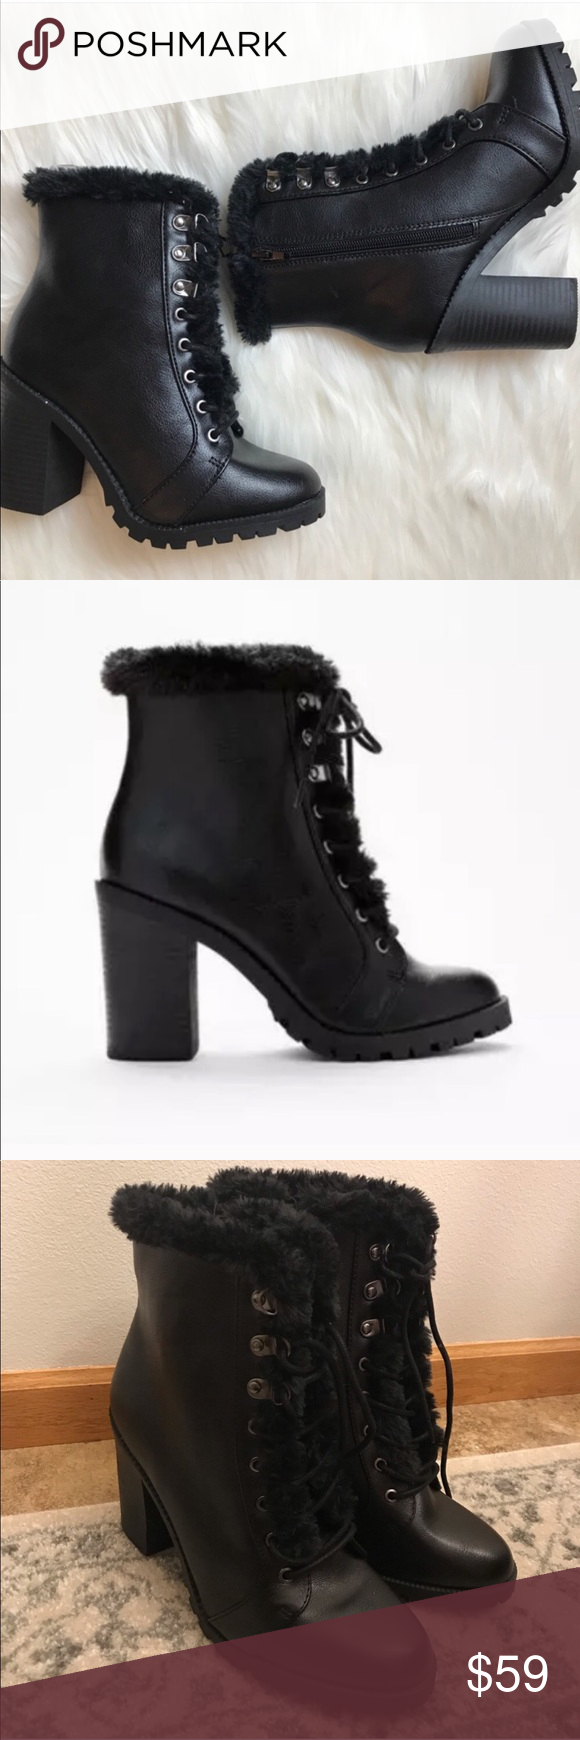 b9b63d561c66 EXPRESS Faux Fur Trim Heeled Combat Boots Brand new with tags! Express lace  up ankle